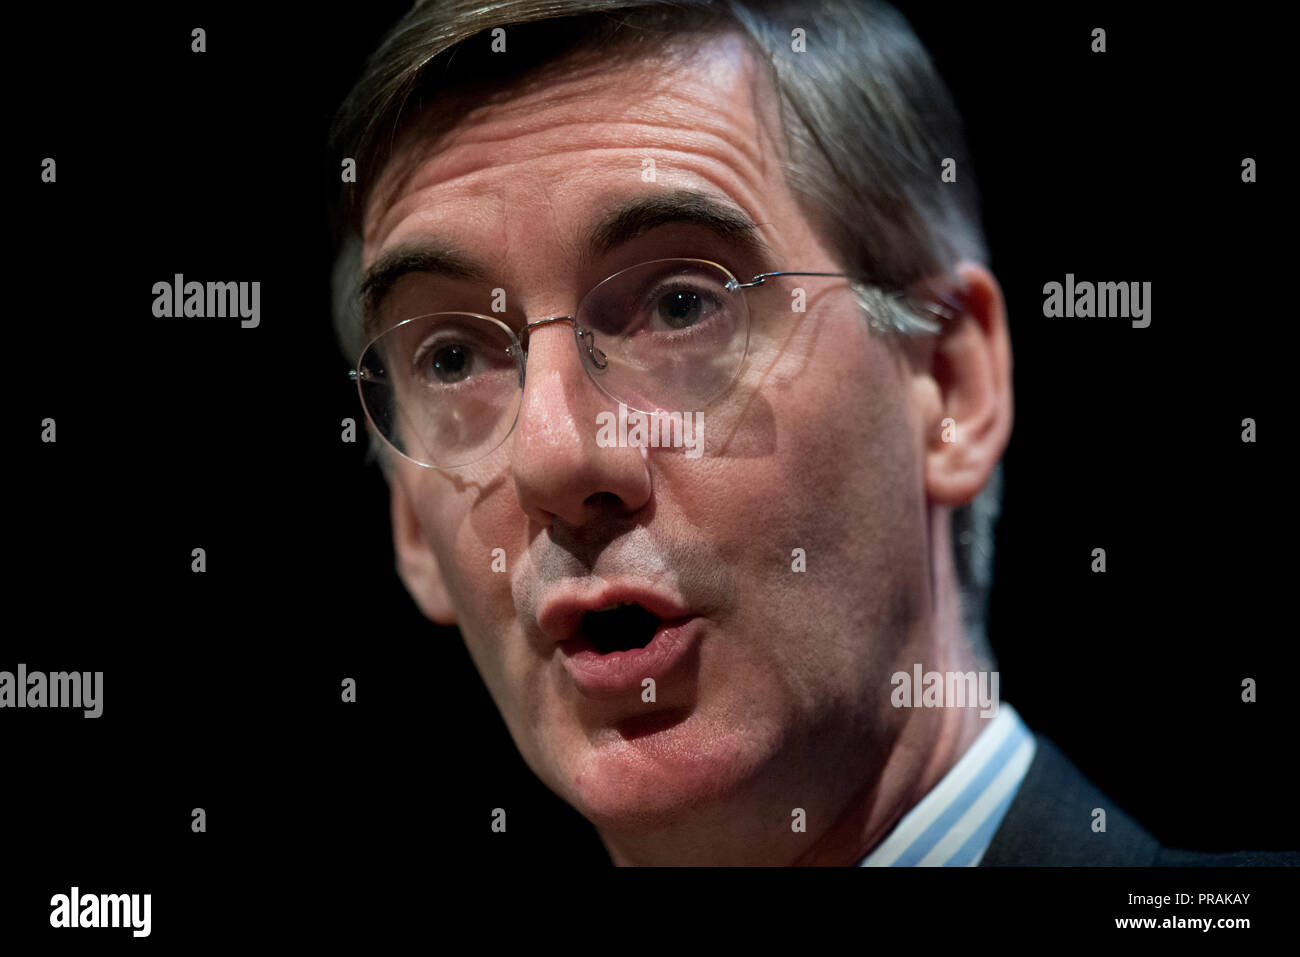 Birmingham, UK. 30th September 2018. Jacob Rees-Mogg, MP for North East Somerset, speaks at the Brexit Central fringe event at the Conservative Party Conference in Birmingham. © Russell Hart/Alamy Live News. - Stock Image